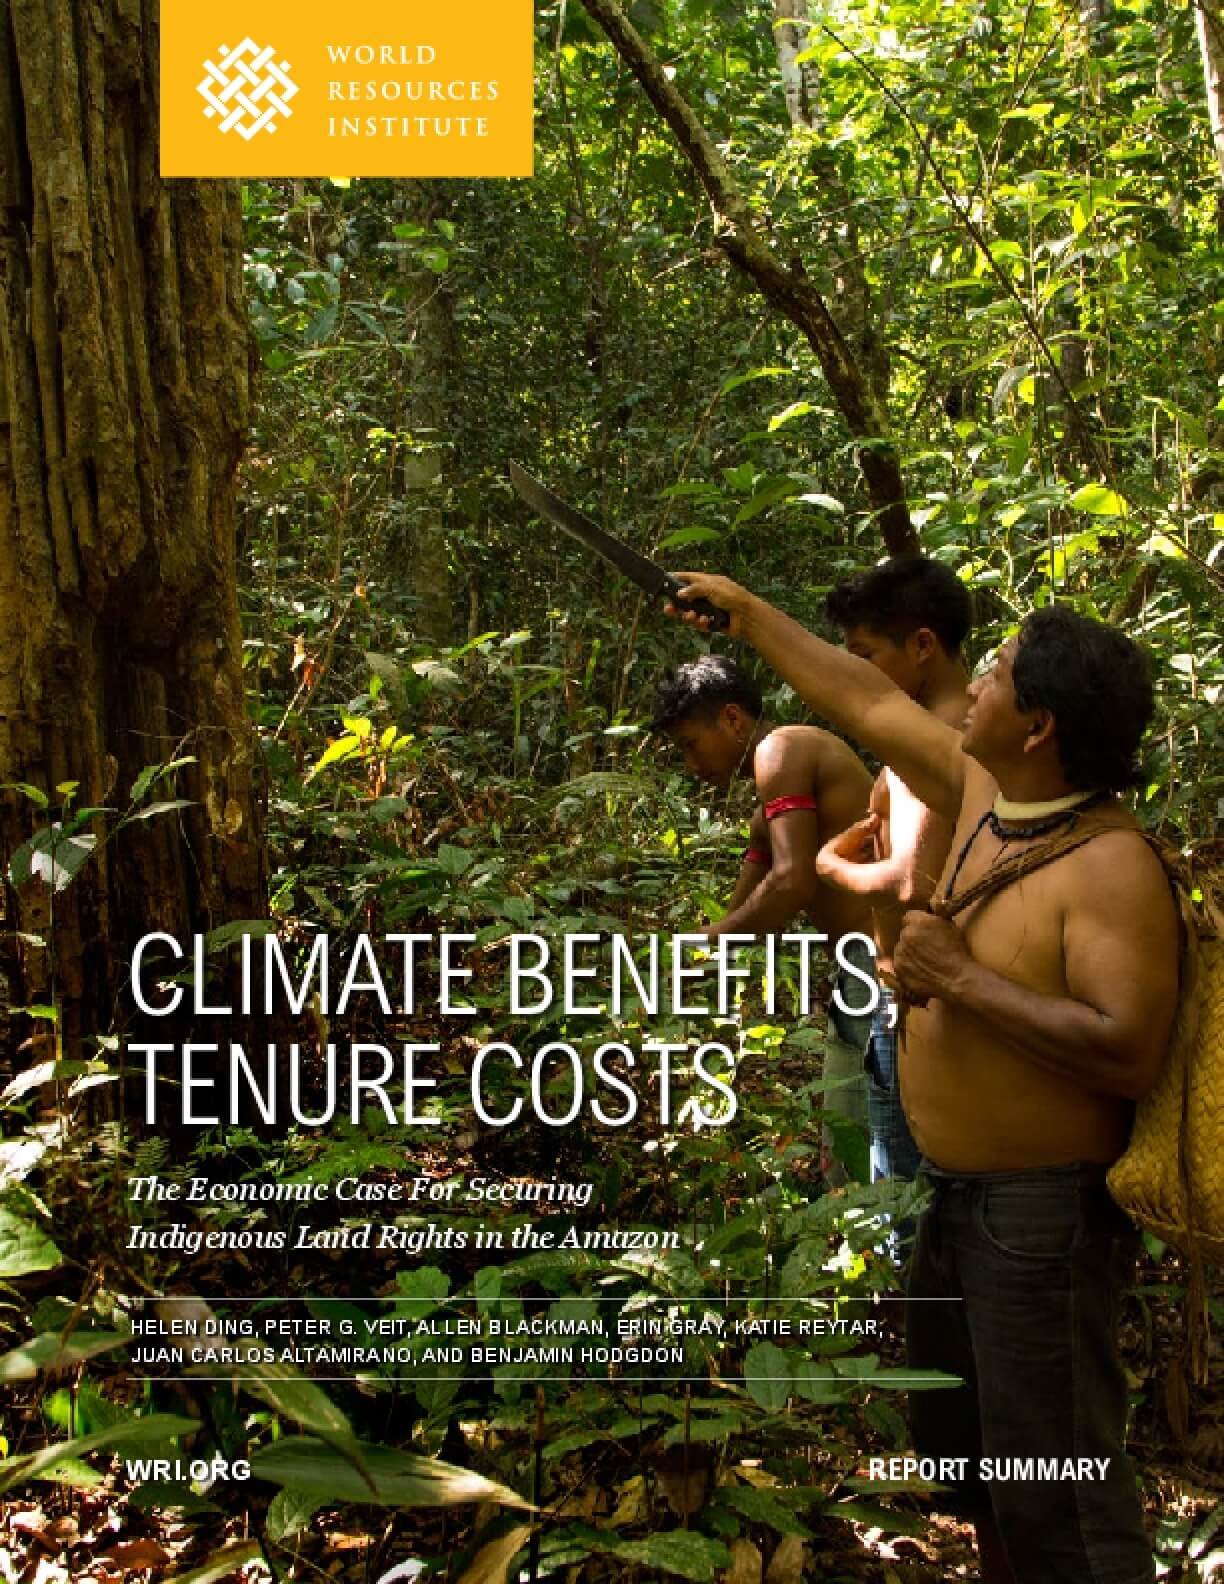 Climate Benefits Tenure Costs: The Economic Case for Securing Indigenous Land Rights in the Amazon, Executive Summary